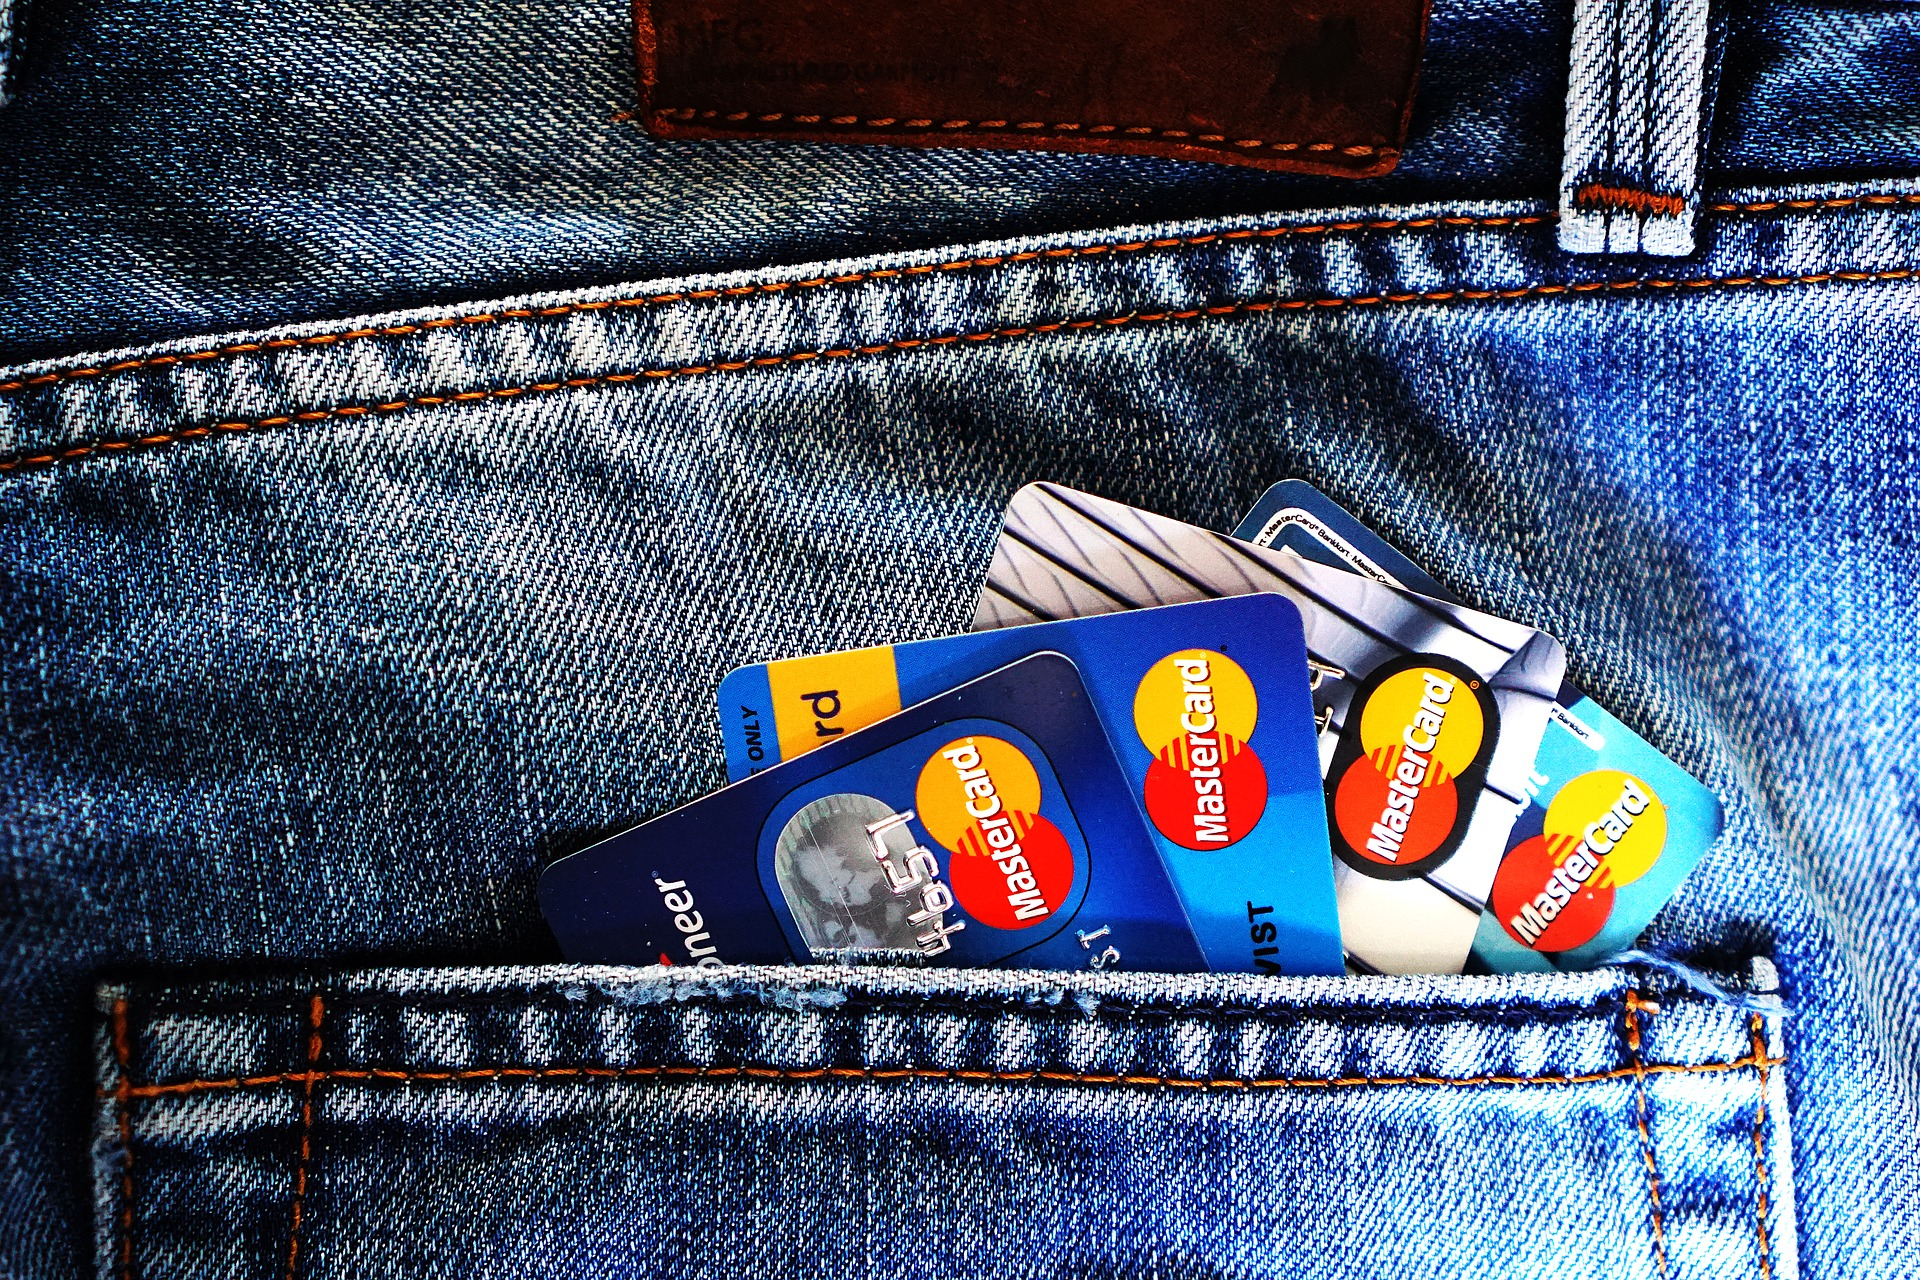 How do you find the best credit card? Image: Pixabay